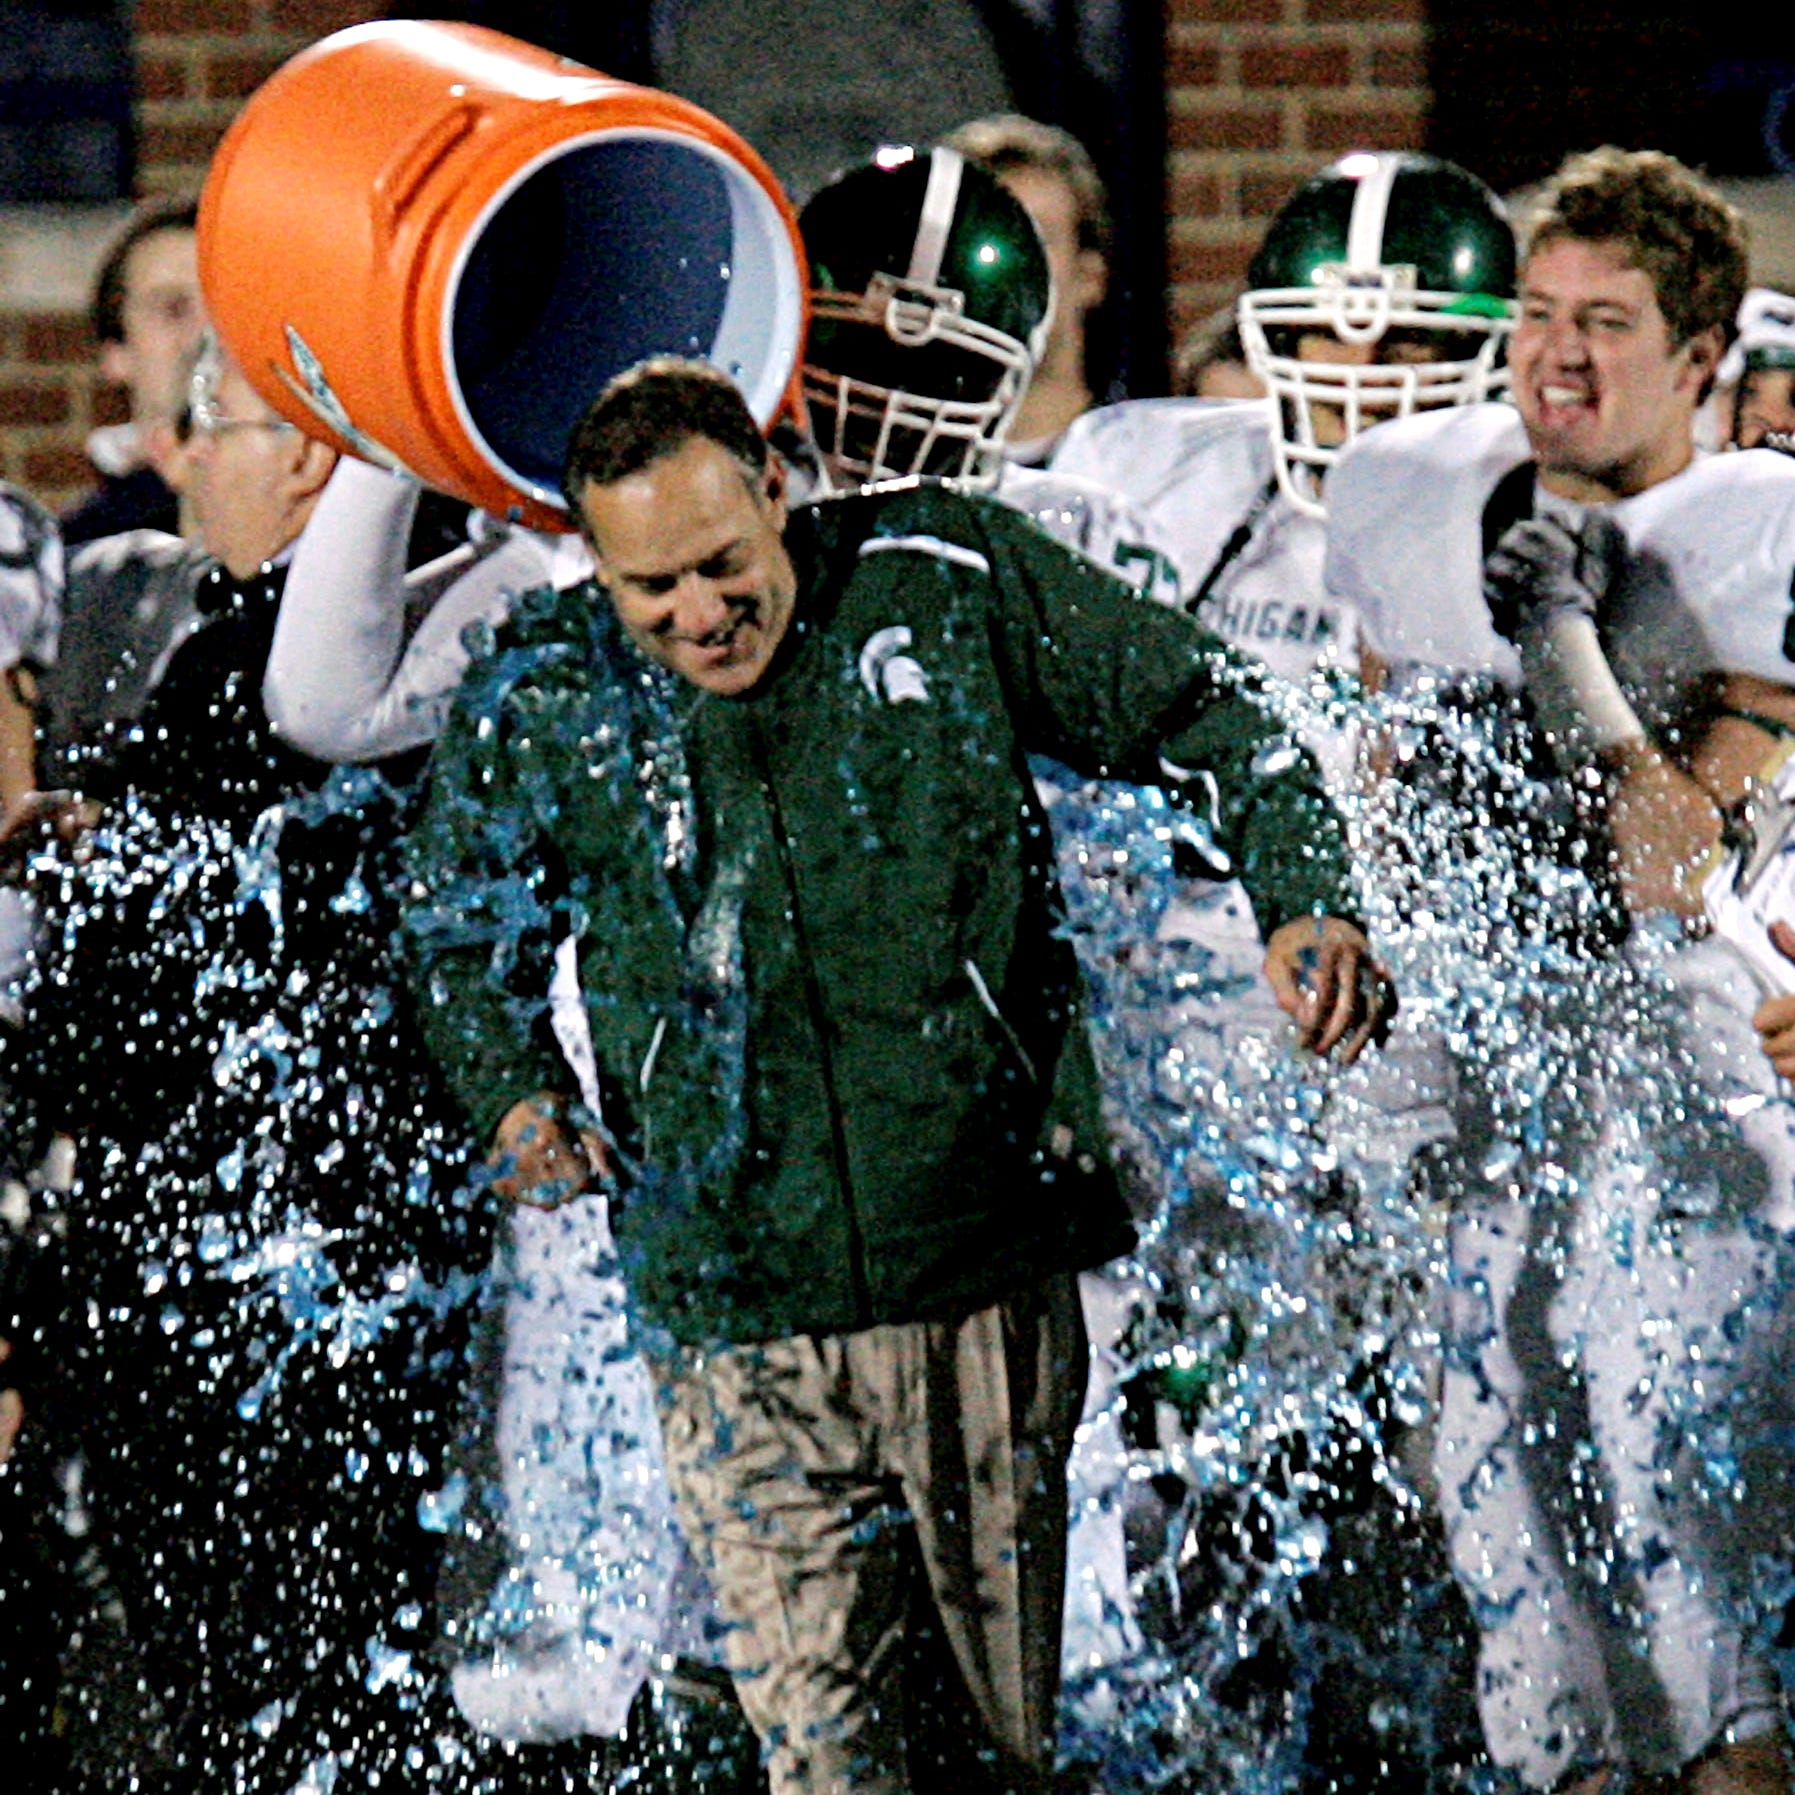 A Michigan State player pours a sports drink on head football coach Mark Dantonio during the closing seconds of their 35-21 win over Michigan in an NCAA college football game in Ann Arbor, Mich., Saturday, Oct. 25, 2008. (AP Photo/Carlos Osorio)